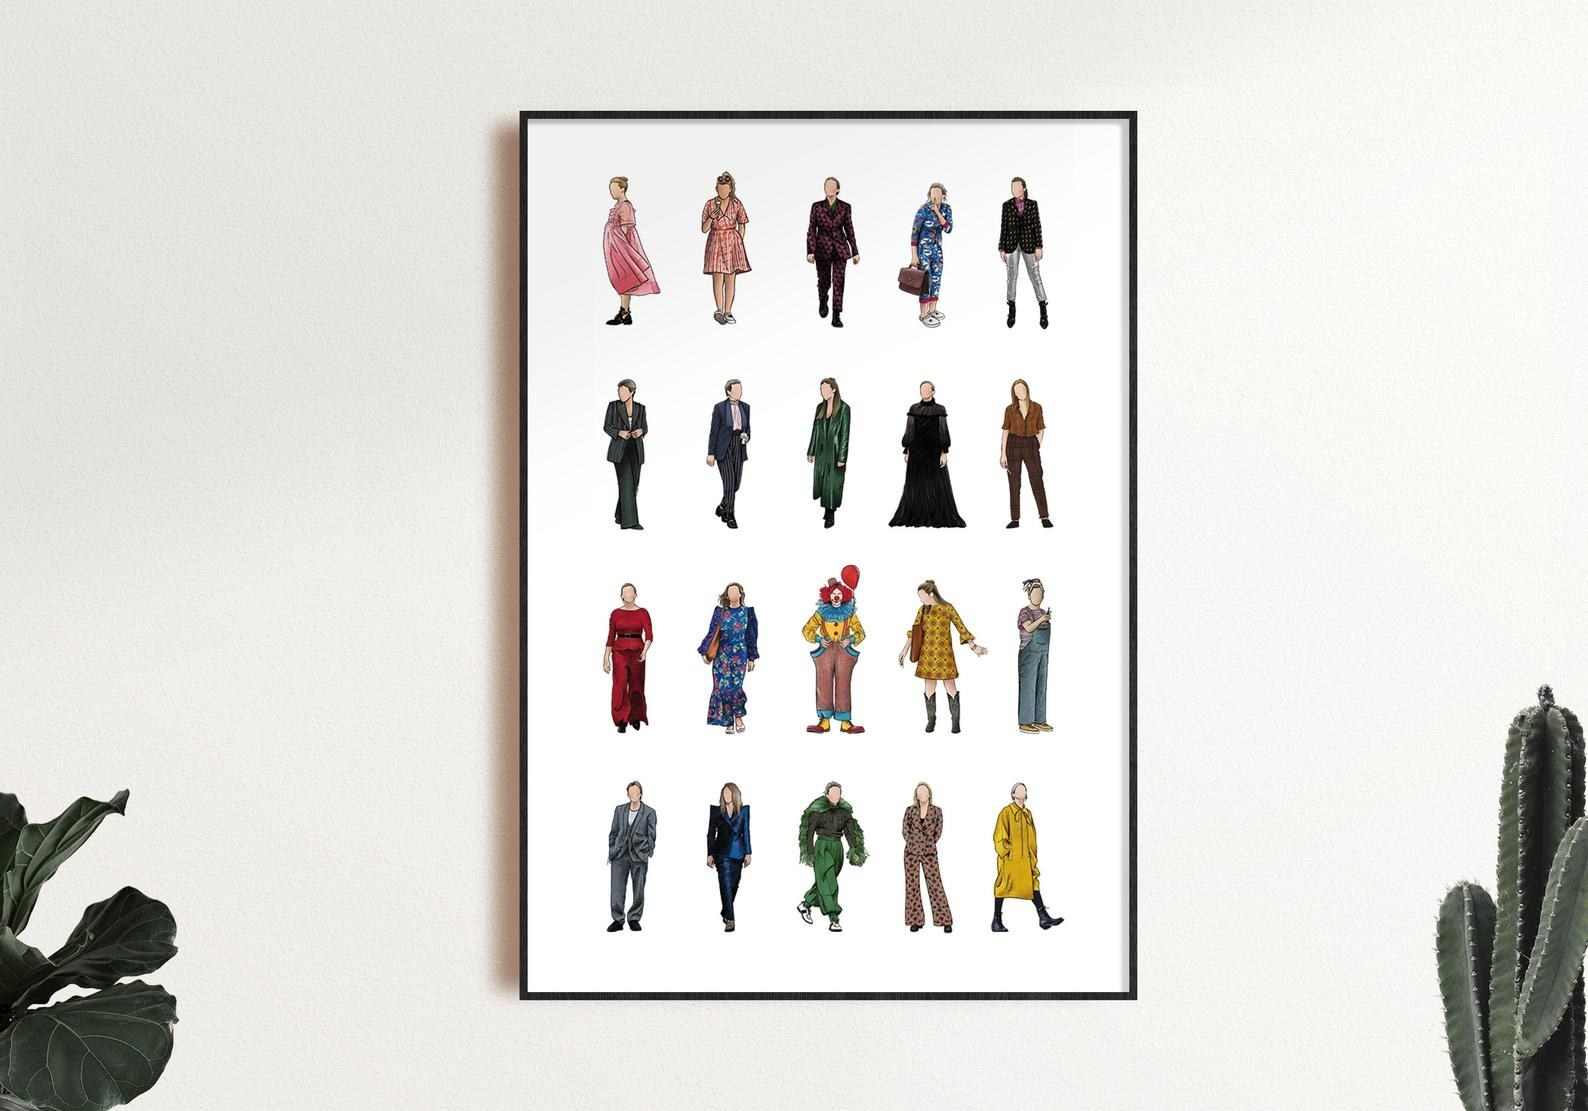 The 20 outfits on a print